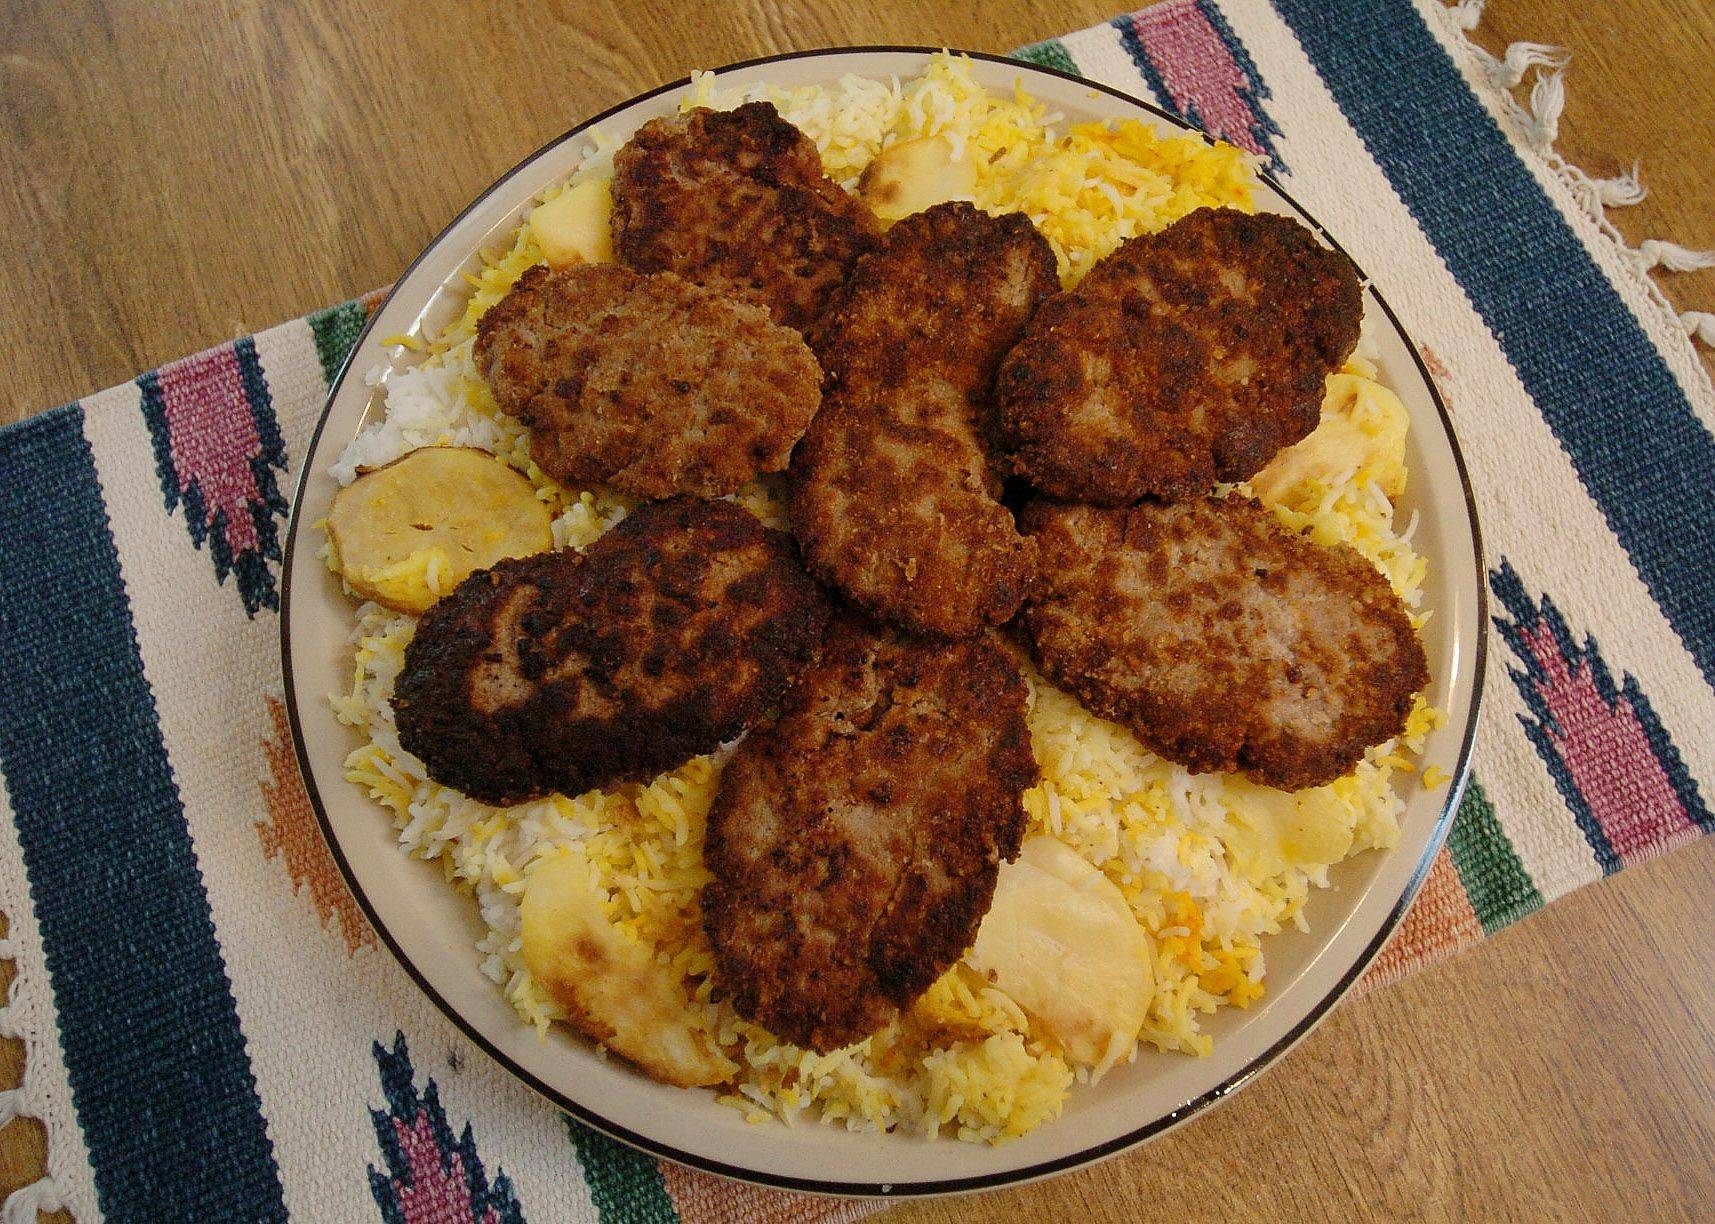 Cinnamon provides depth to Persian ground meat patties known as kotletes.